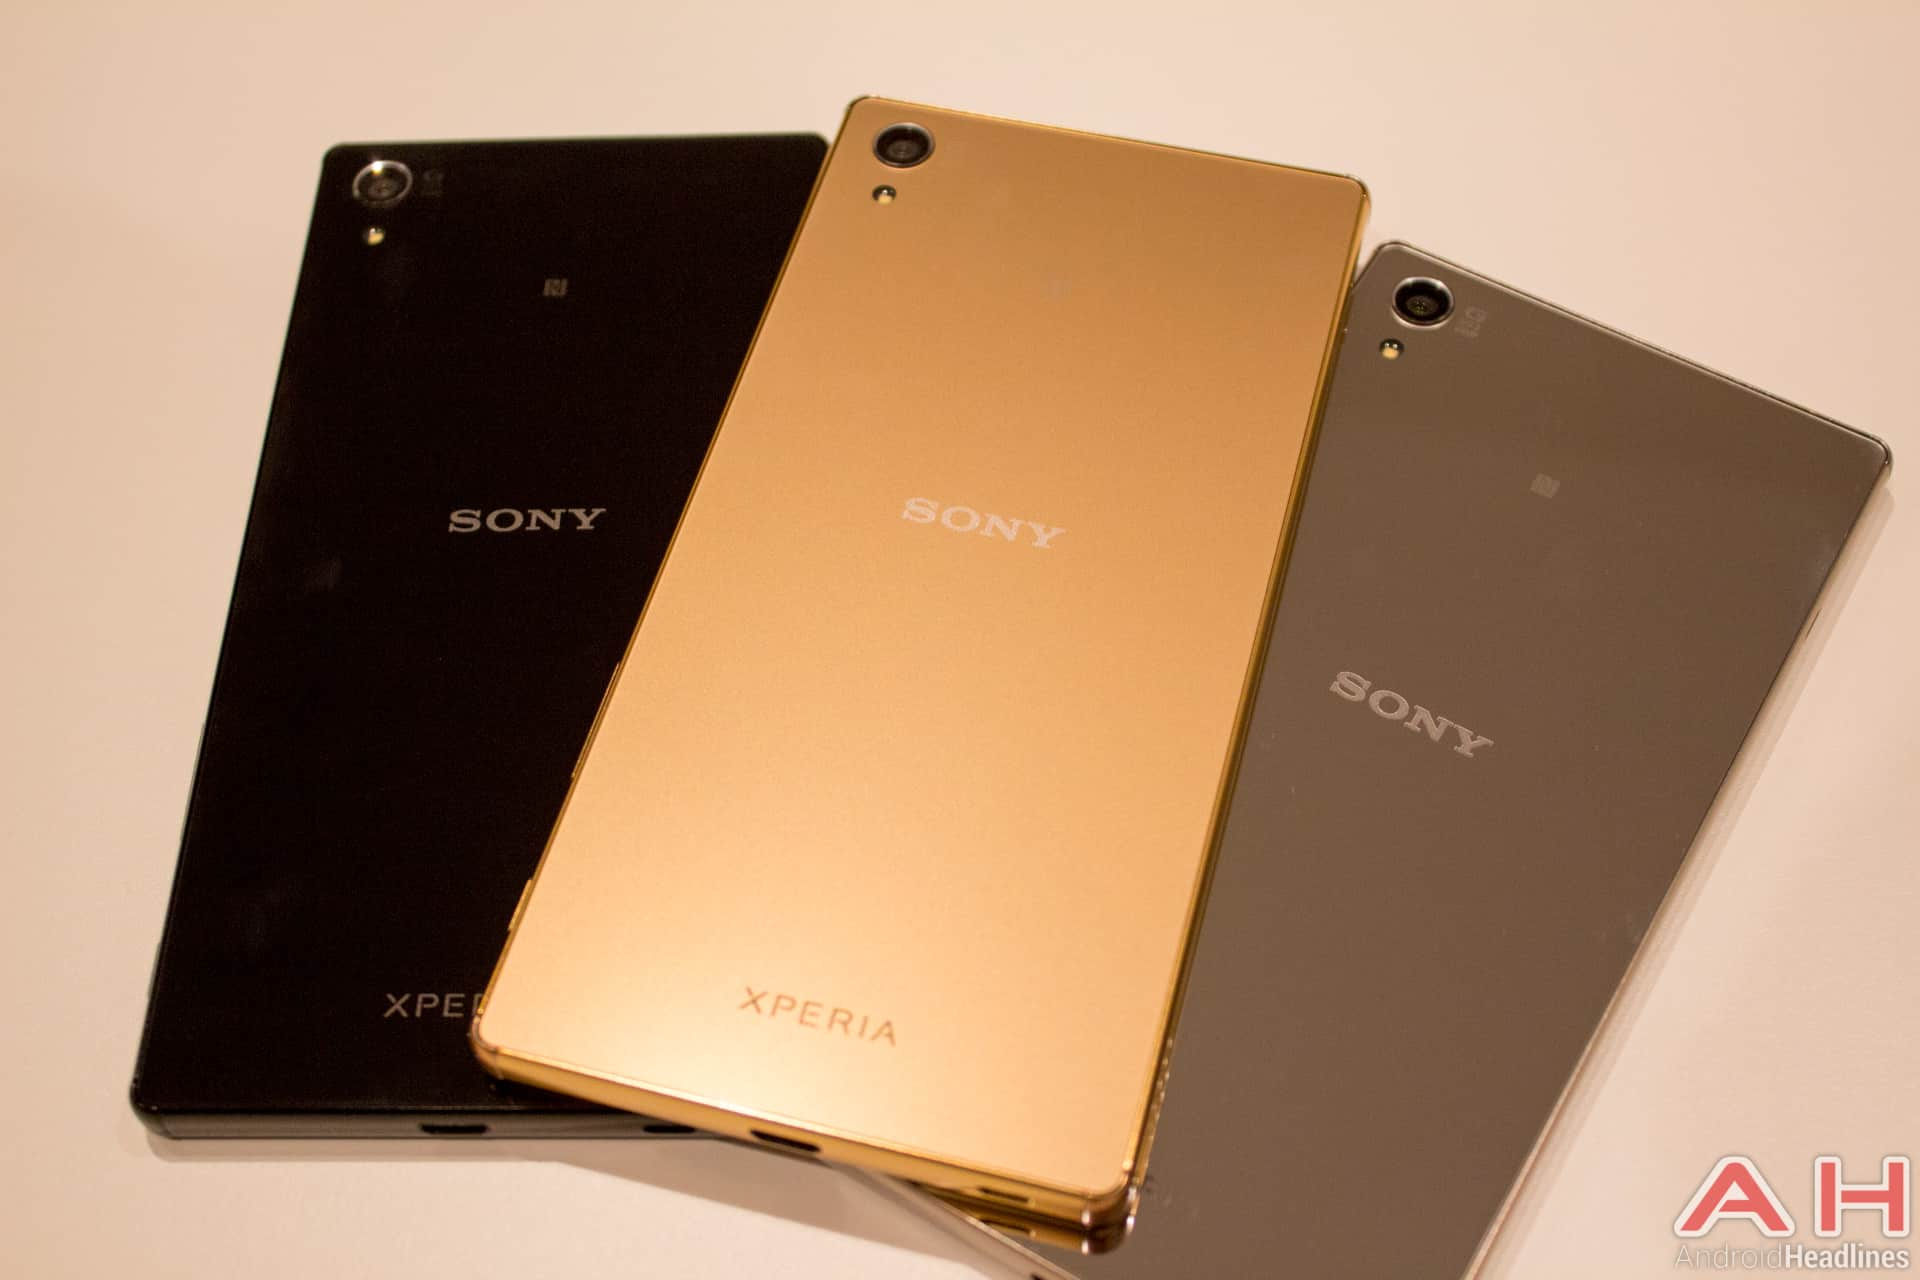 Xperia z5 amp z5 compact now available for pre order in hk